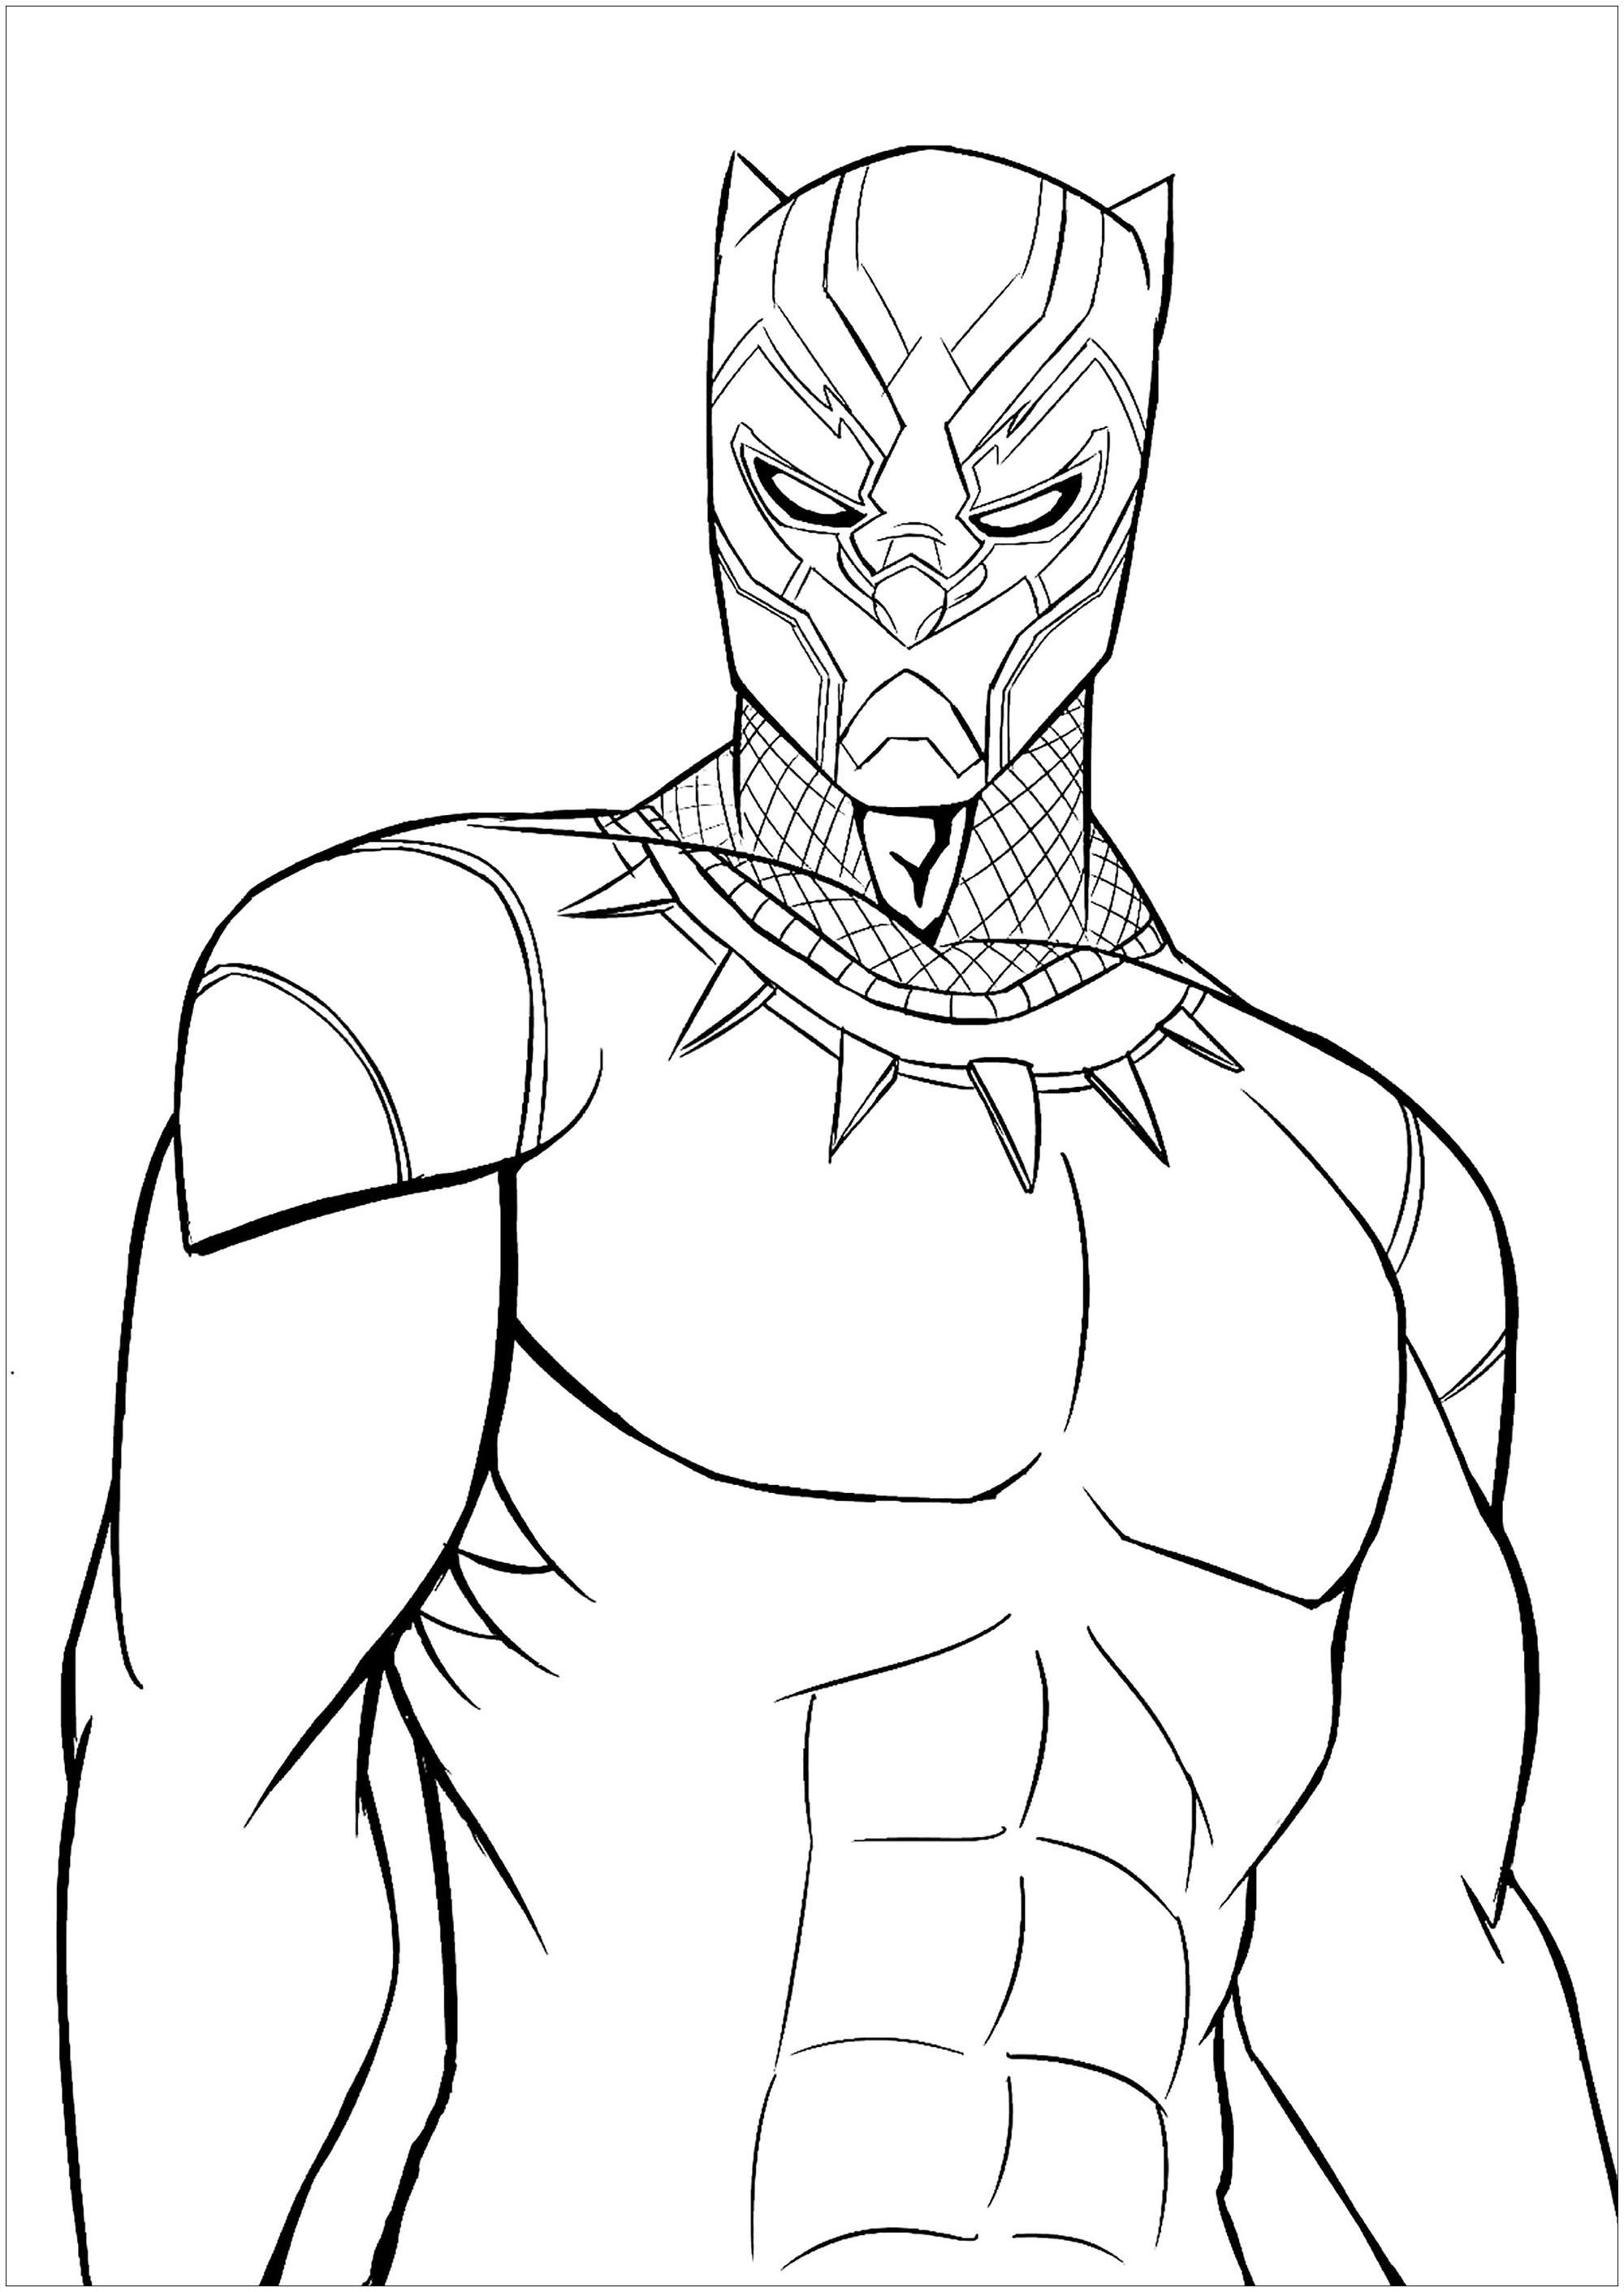 Black Panther Black Panther Coloring Pages For Kids Just Color